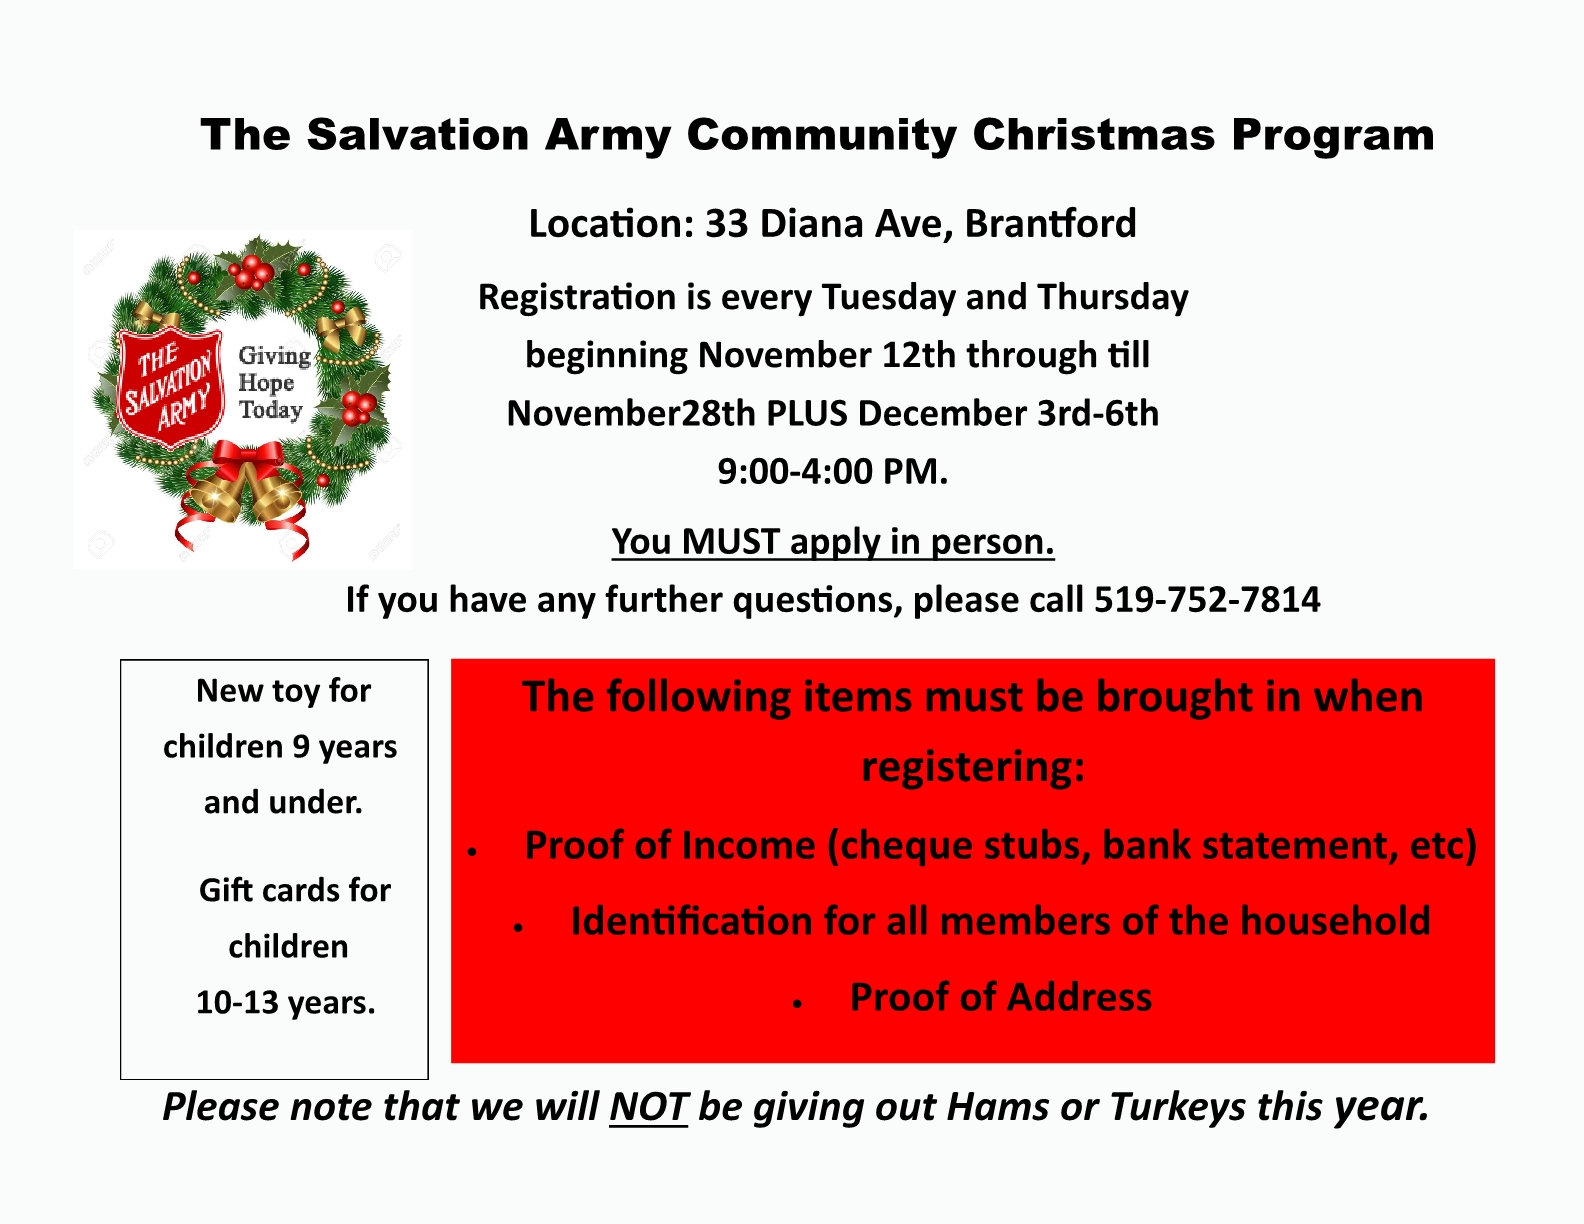 Salvation Army Community Christmas Program poster